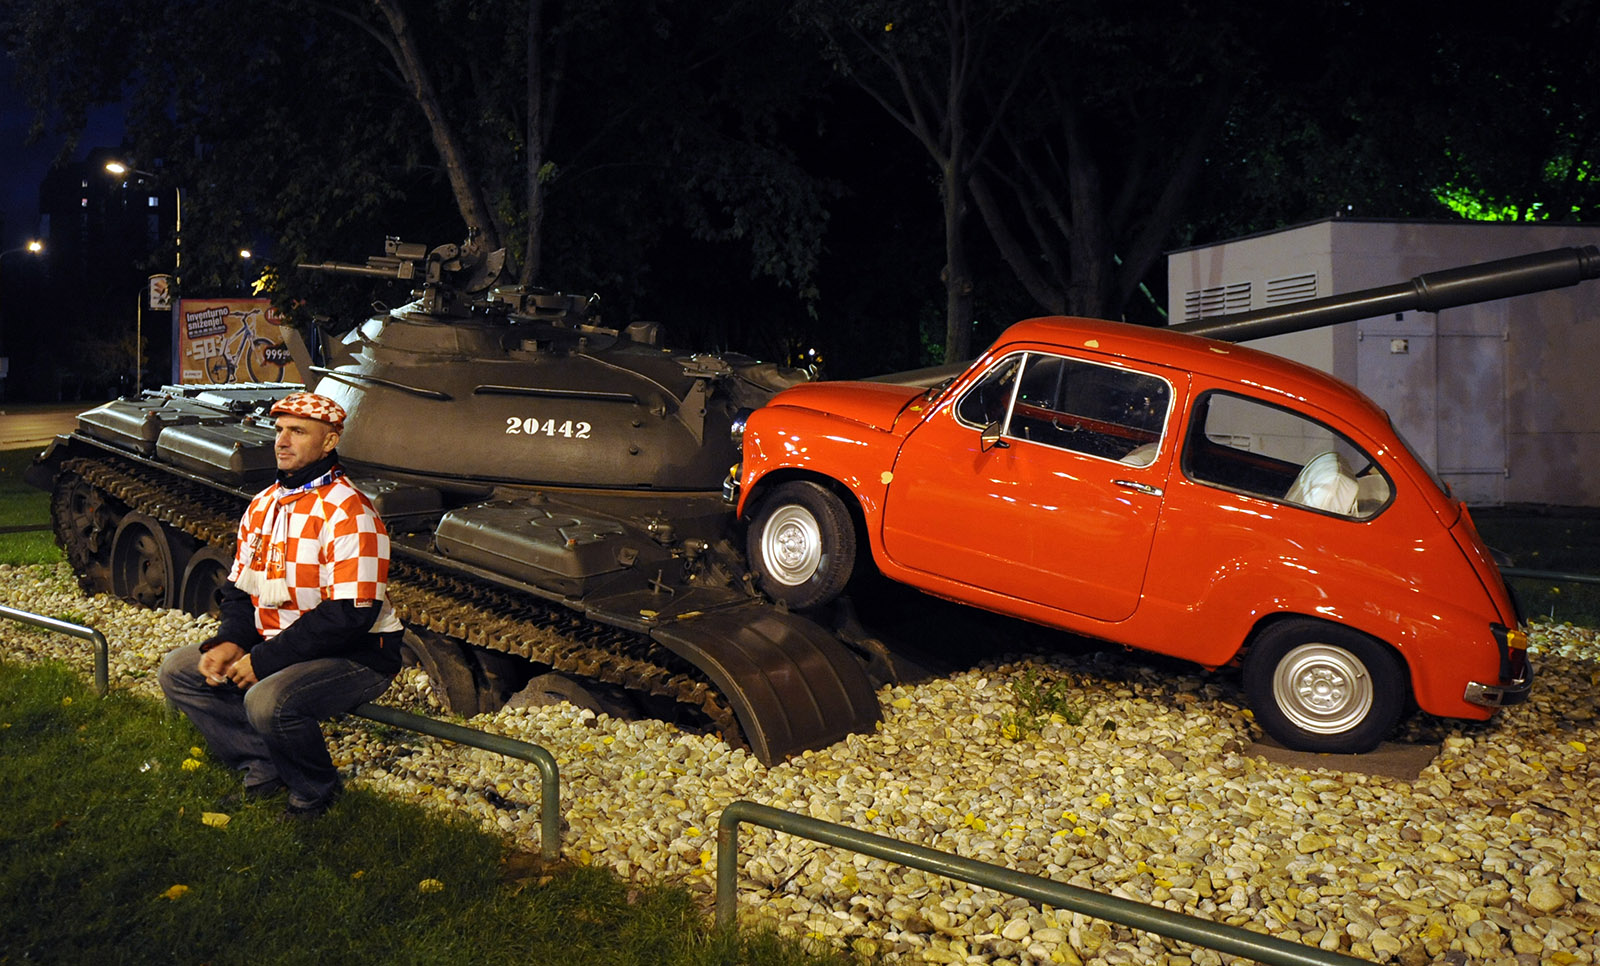 A Croatian football fan sitting in front of an art installation showing a former Yugoslav National Army tank in collision with a small red car, commemorating an actual event regarded by many as marking the beginning of the 1991–1995 war, Osijek, eastern Croatia, 2012